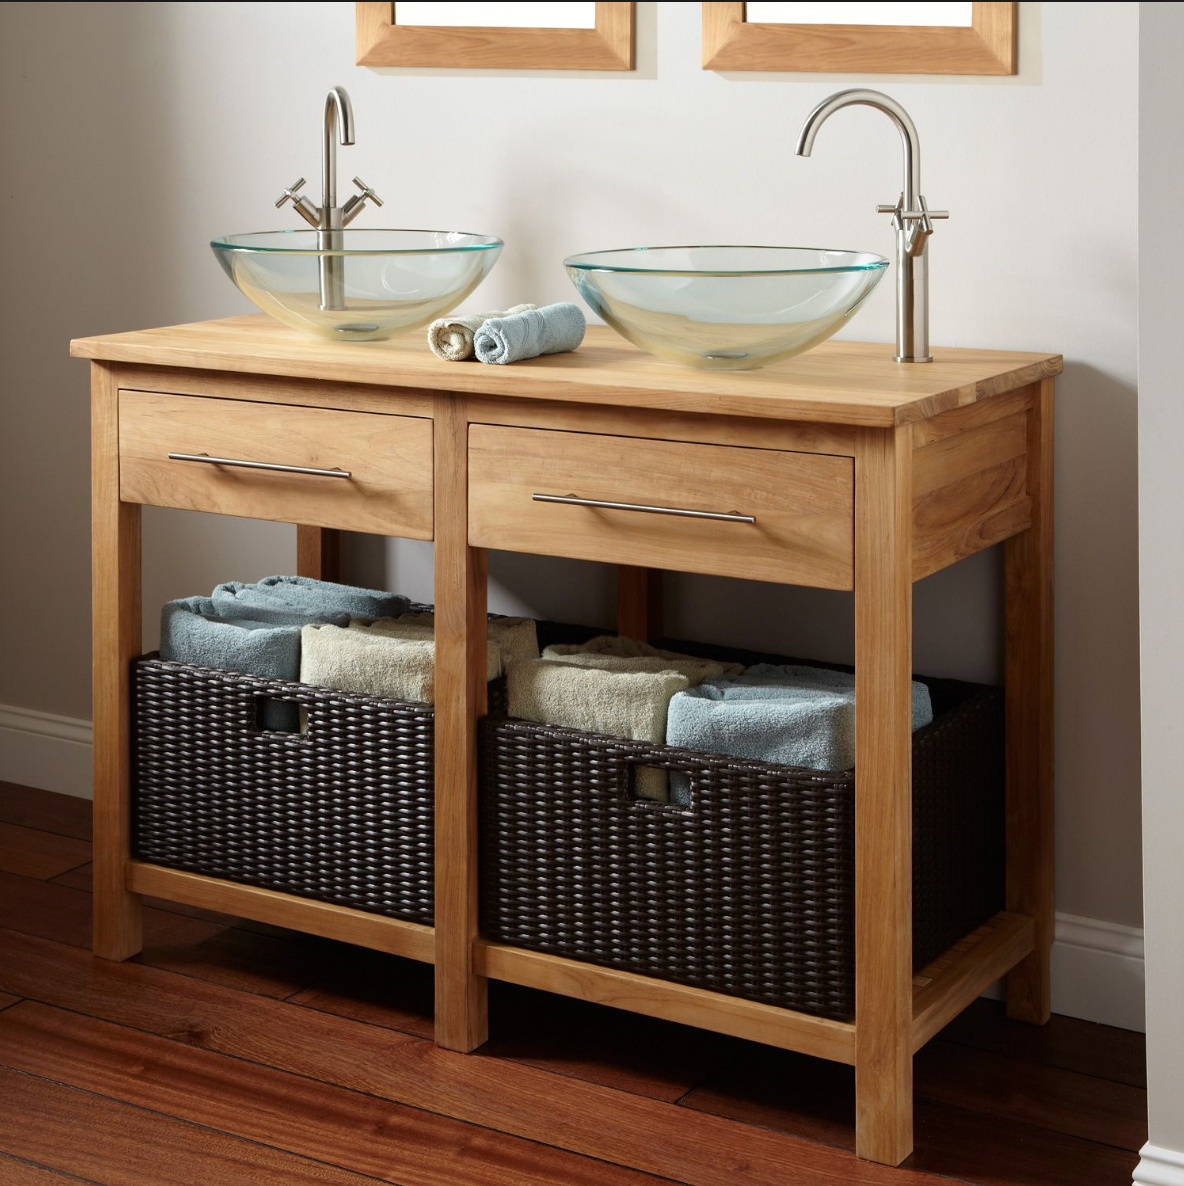 Can Anyone Identify The Wood Used To Build This Vanity